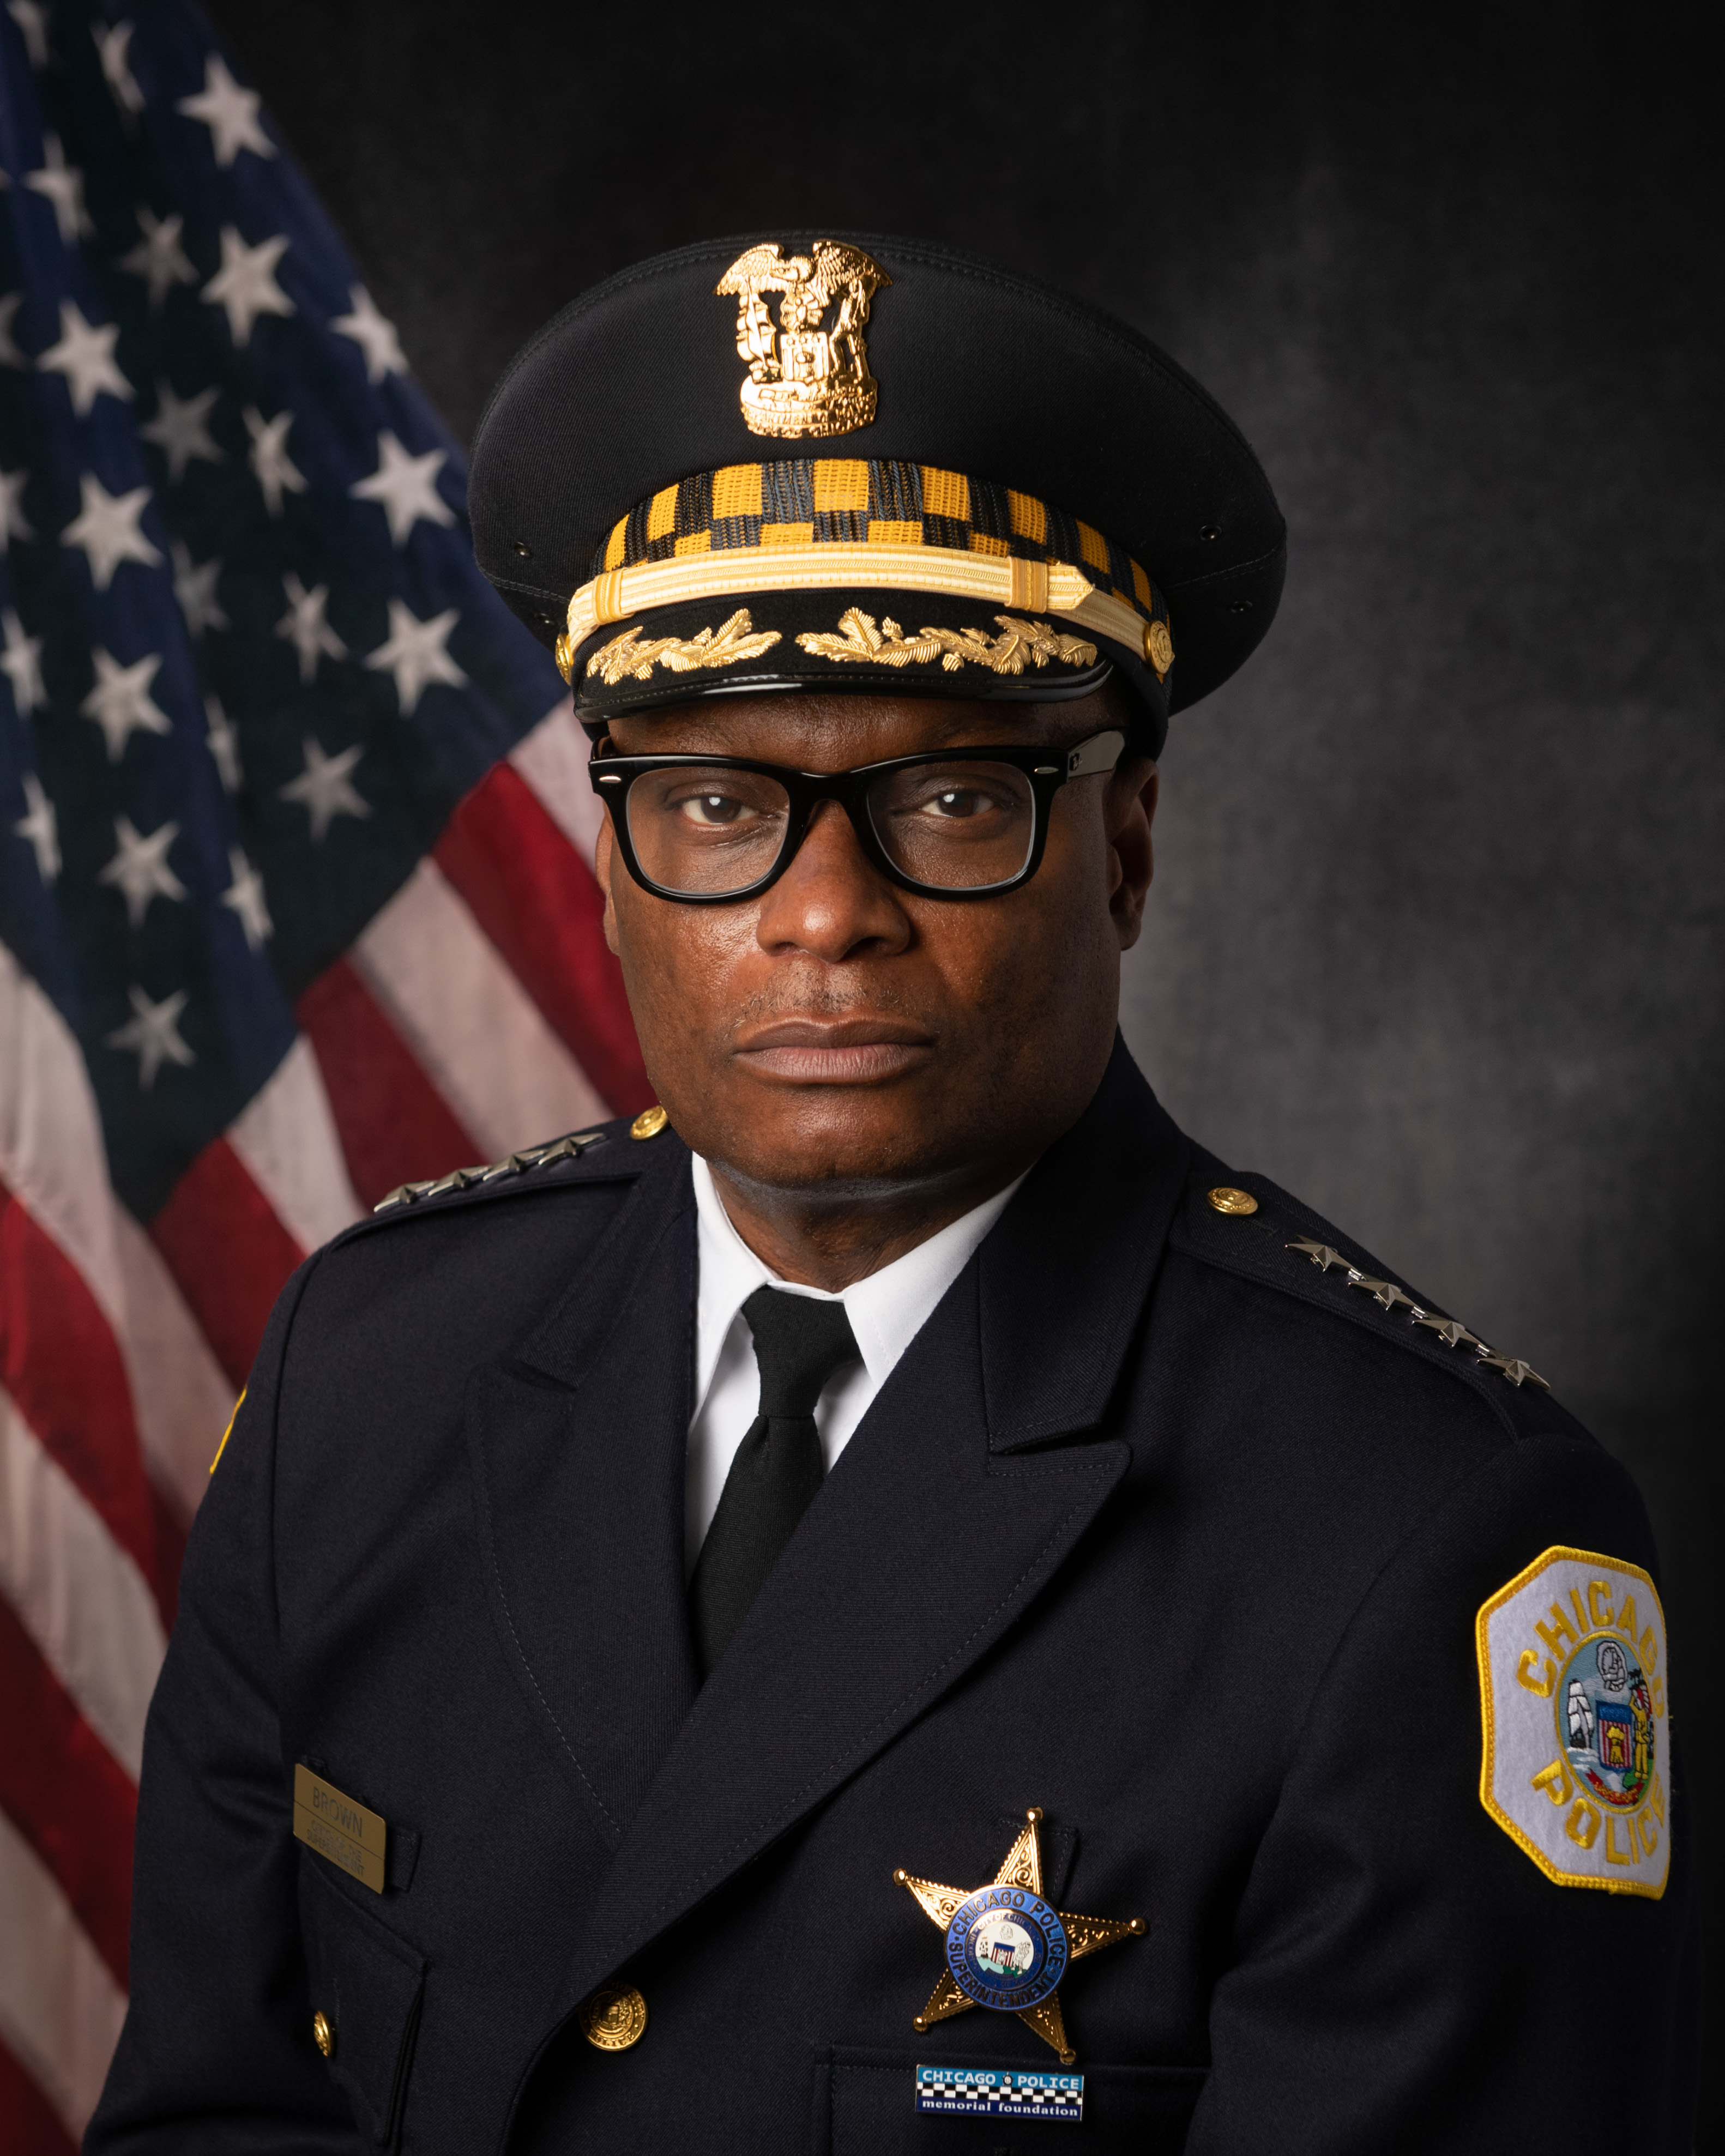 Superintendent of Police David O'Neal Brown